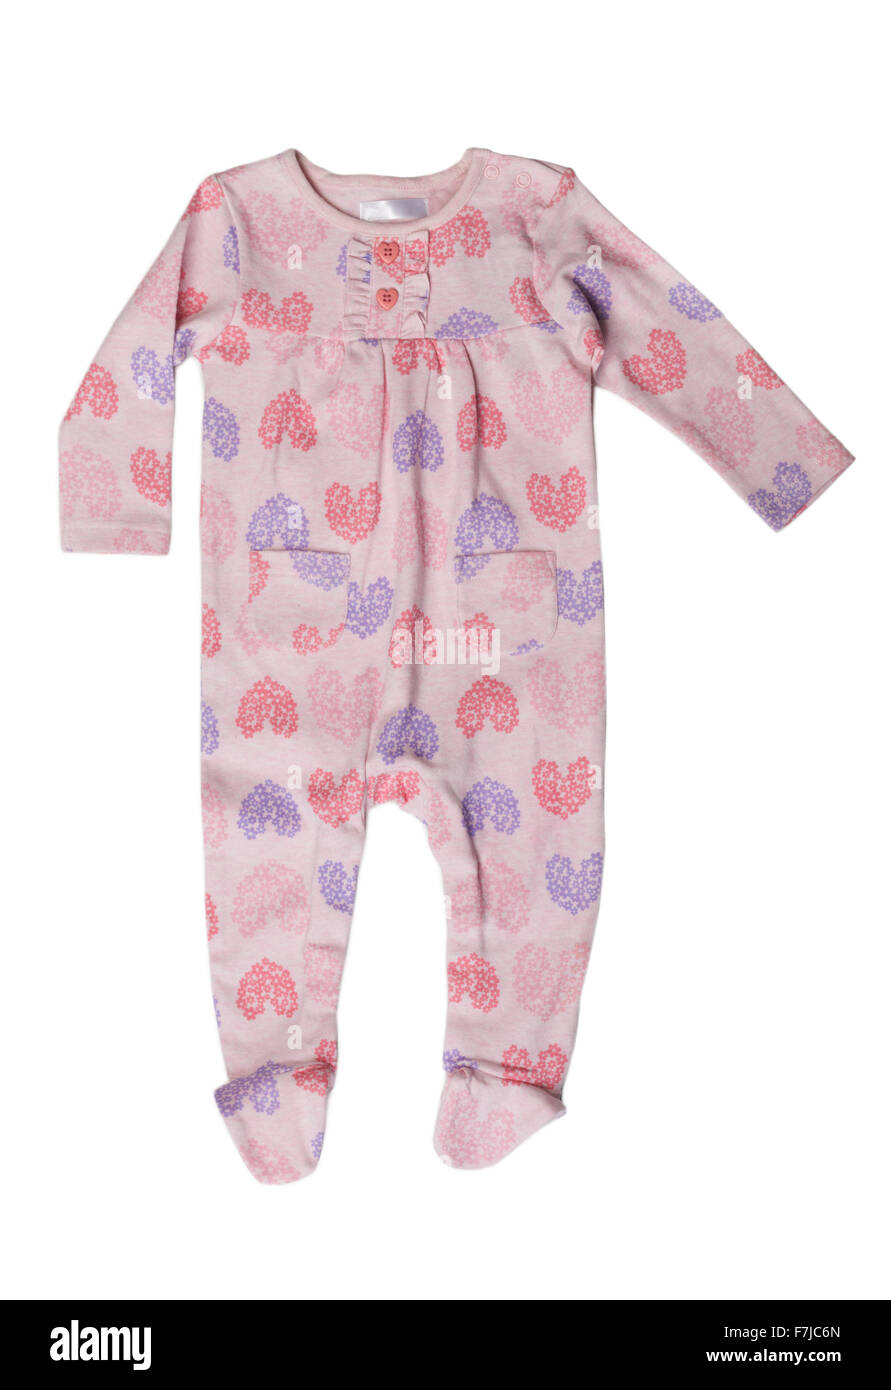 Pink rompers with a pattern. Isolate on white. - Stock Image